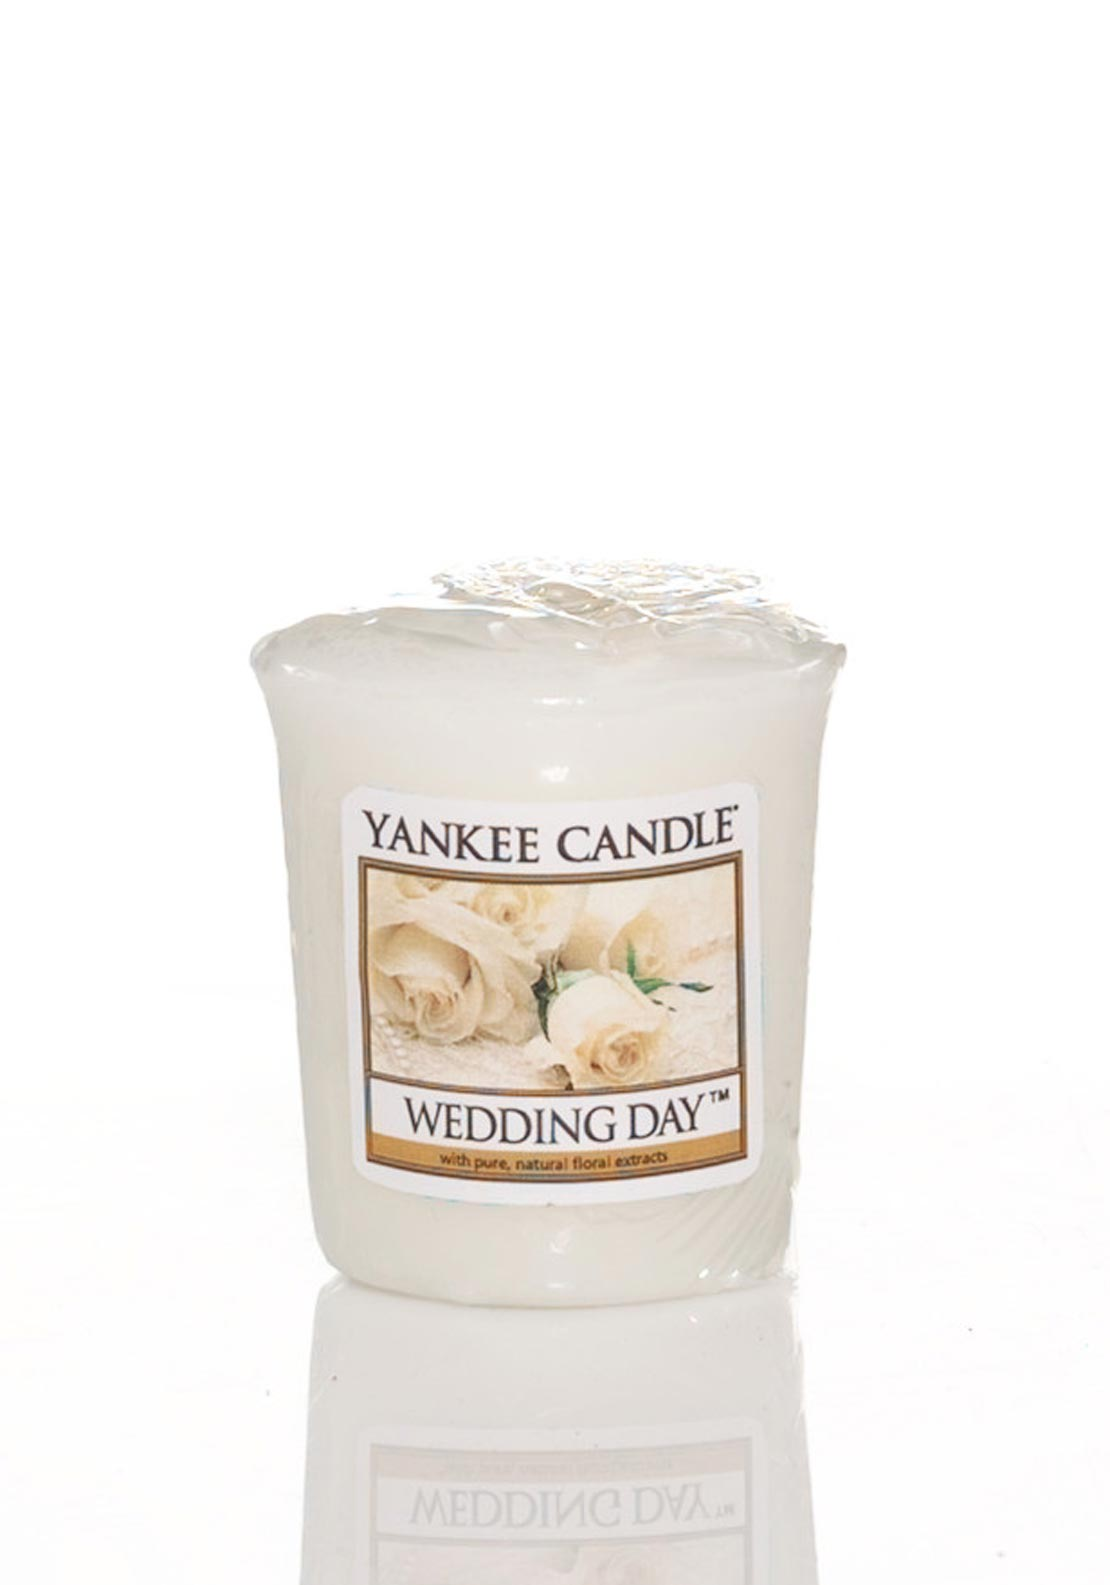 Yankee Candle Sampler Votive Candle, Wedding Day